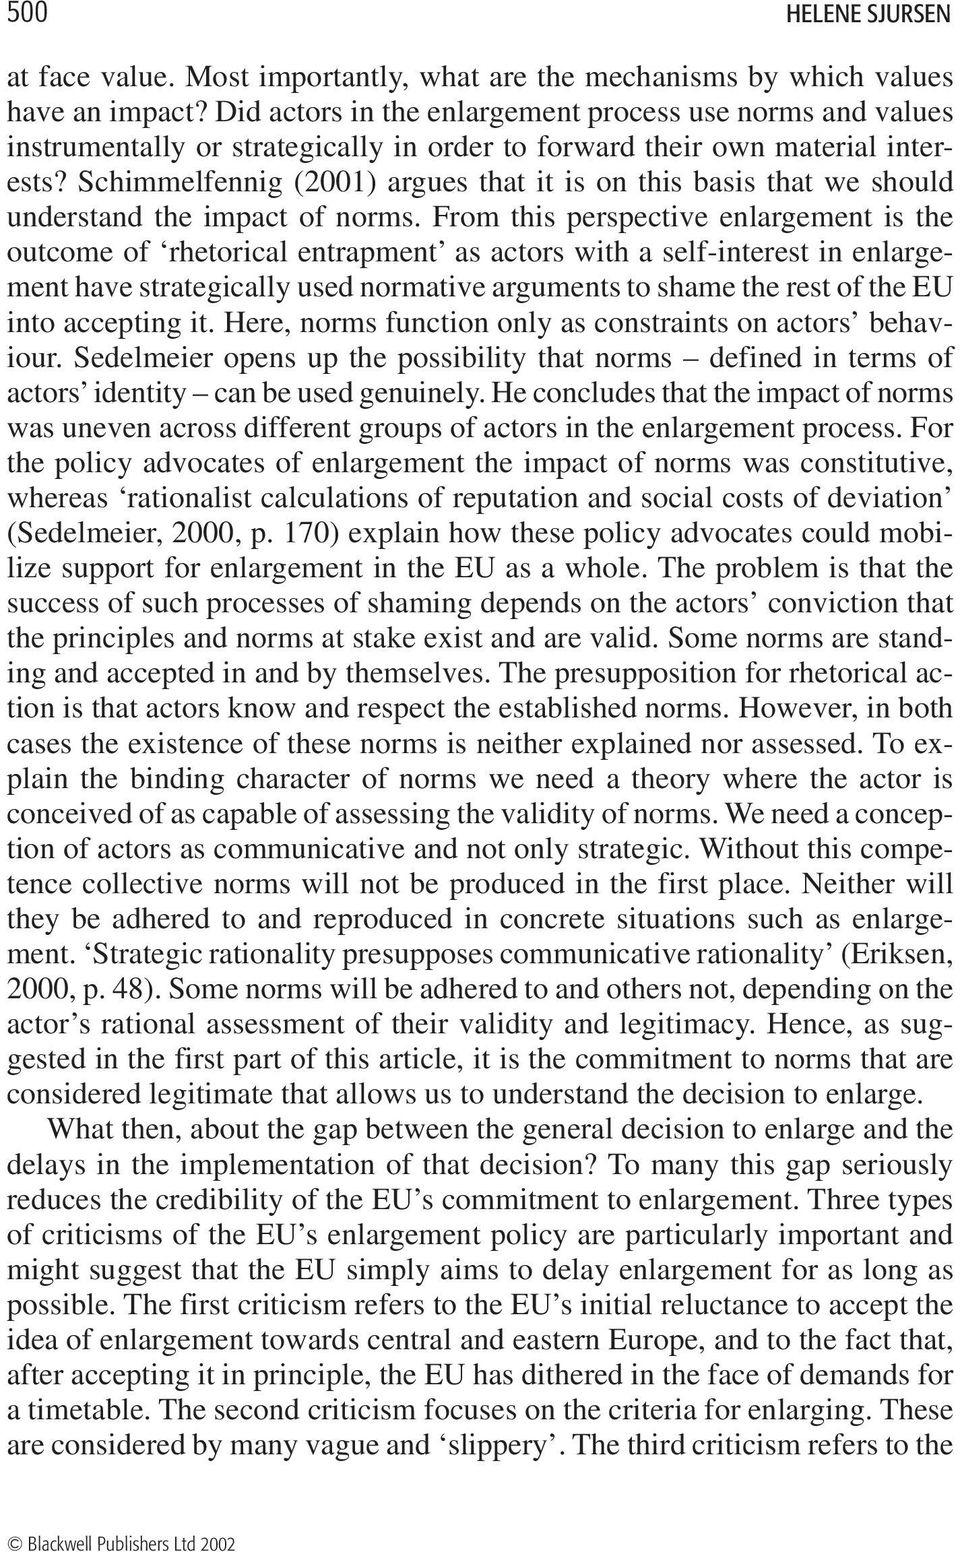 Schimmelfennig (2001) argues that it is on this basis that we should understand the impact of norms.